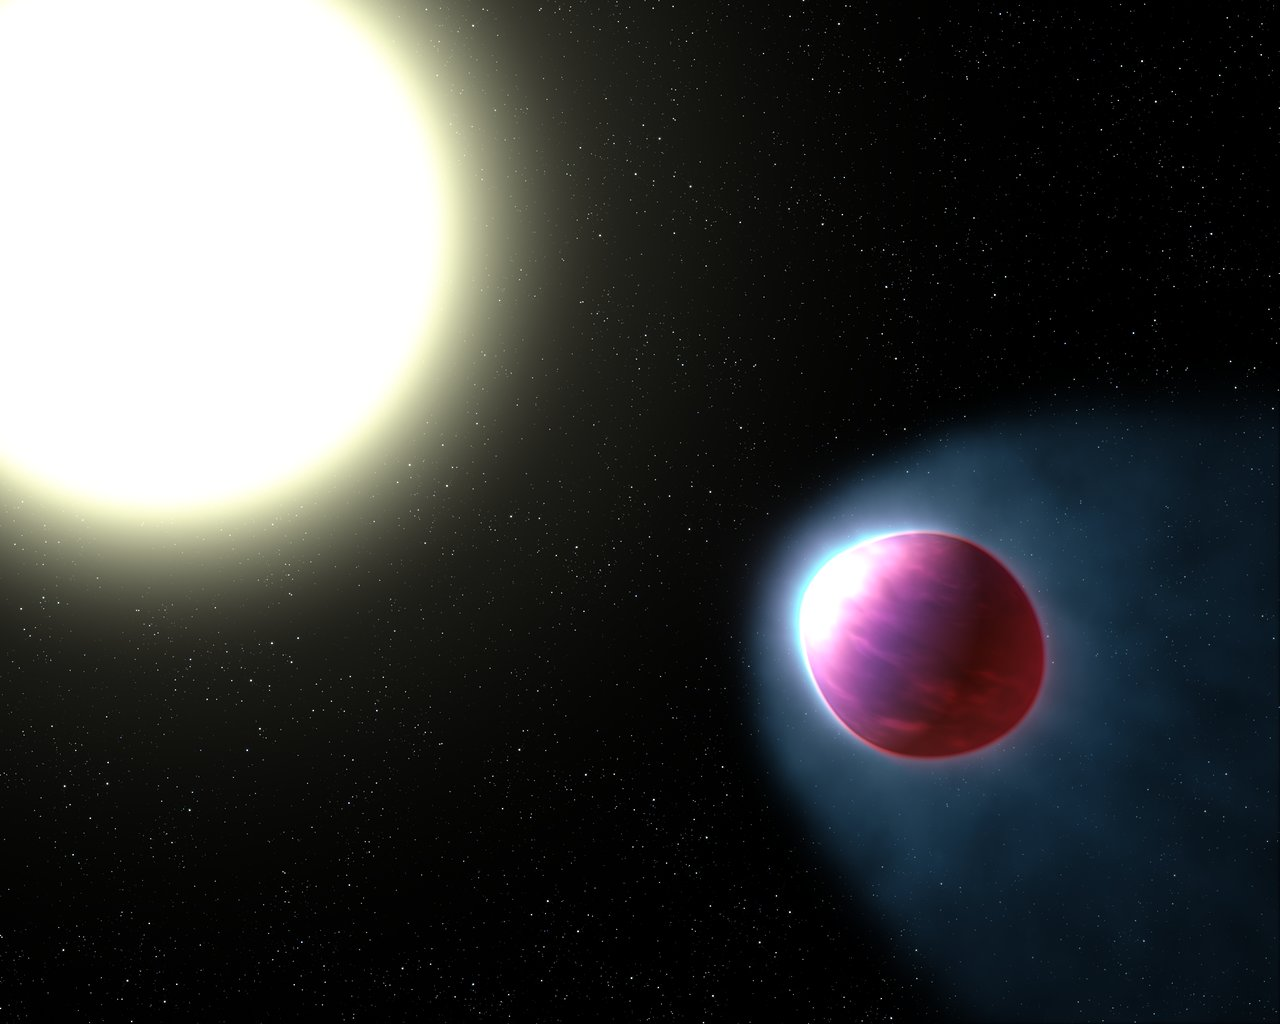 Artist's impression of WASP-121b